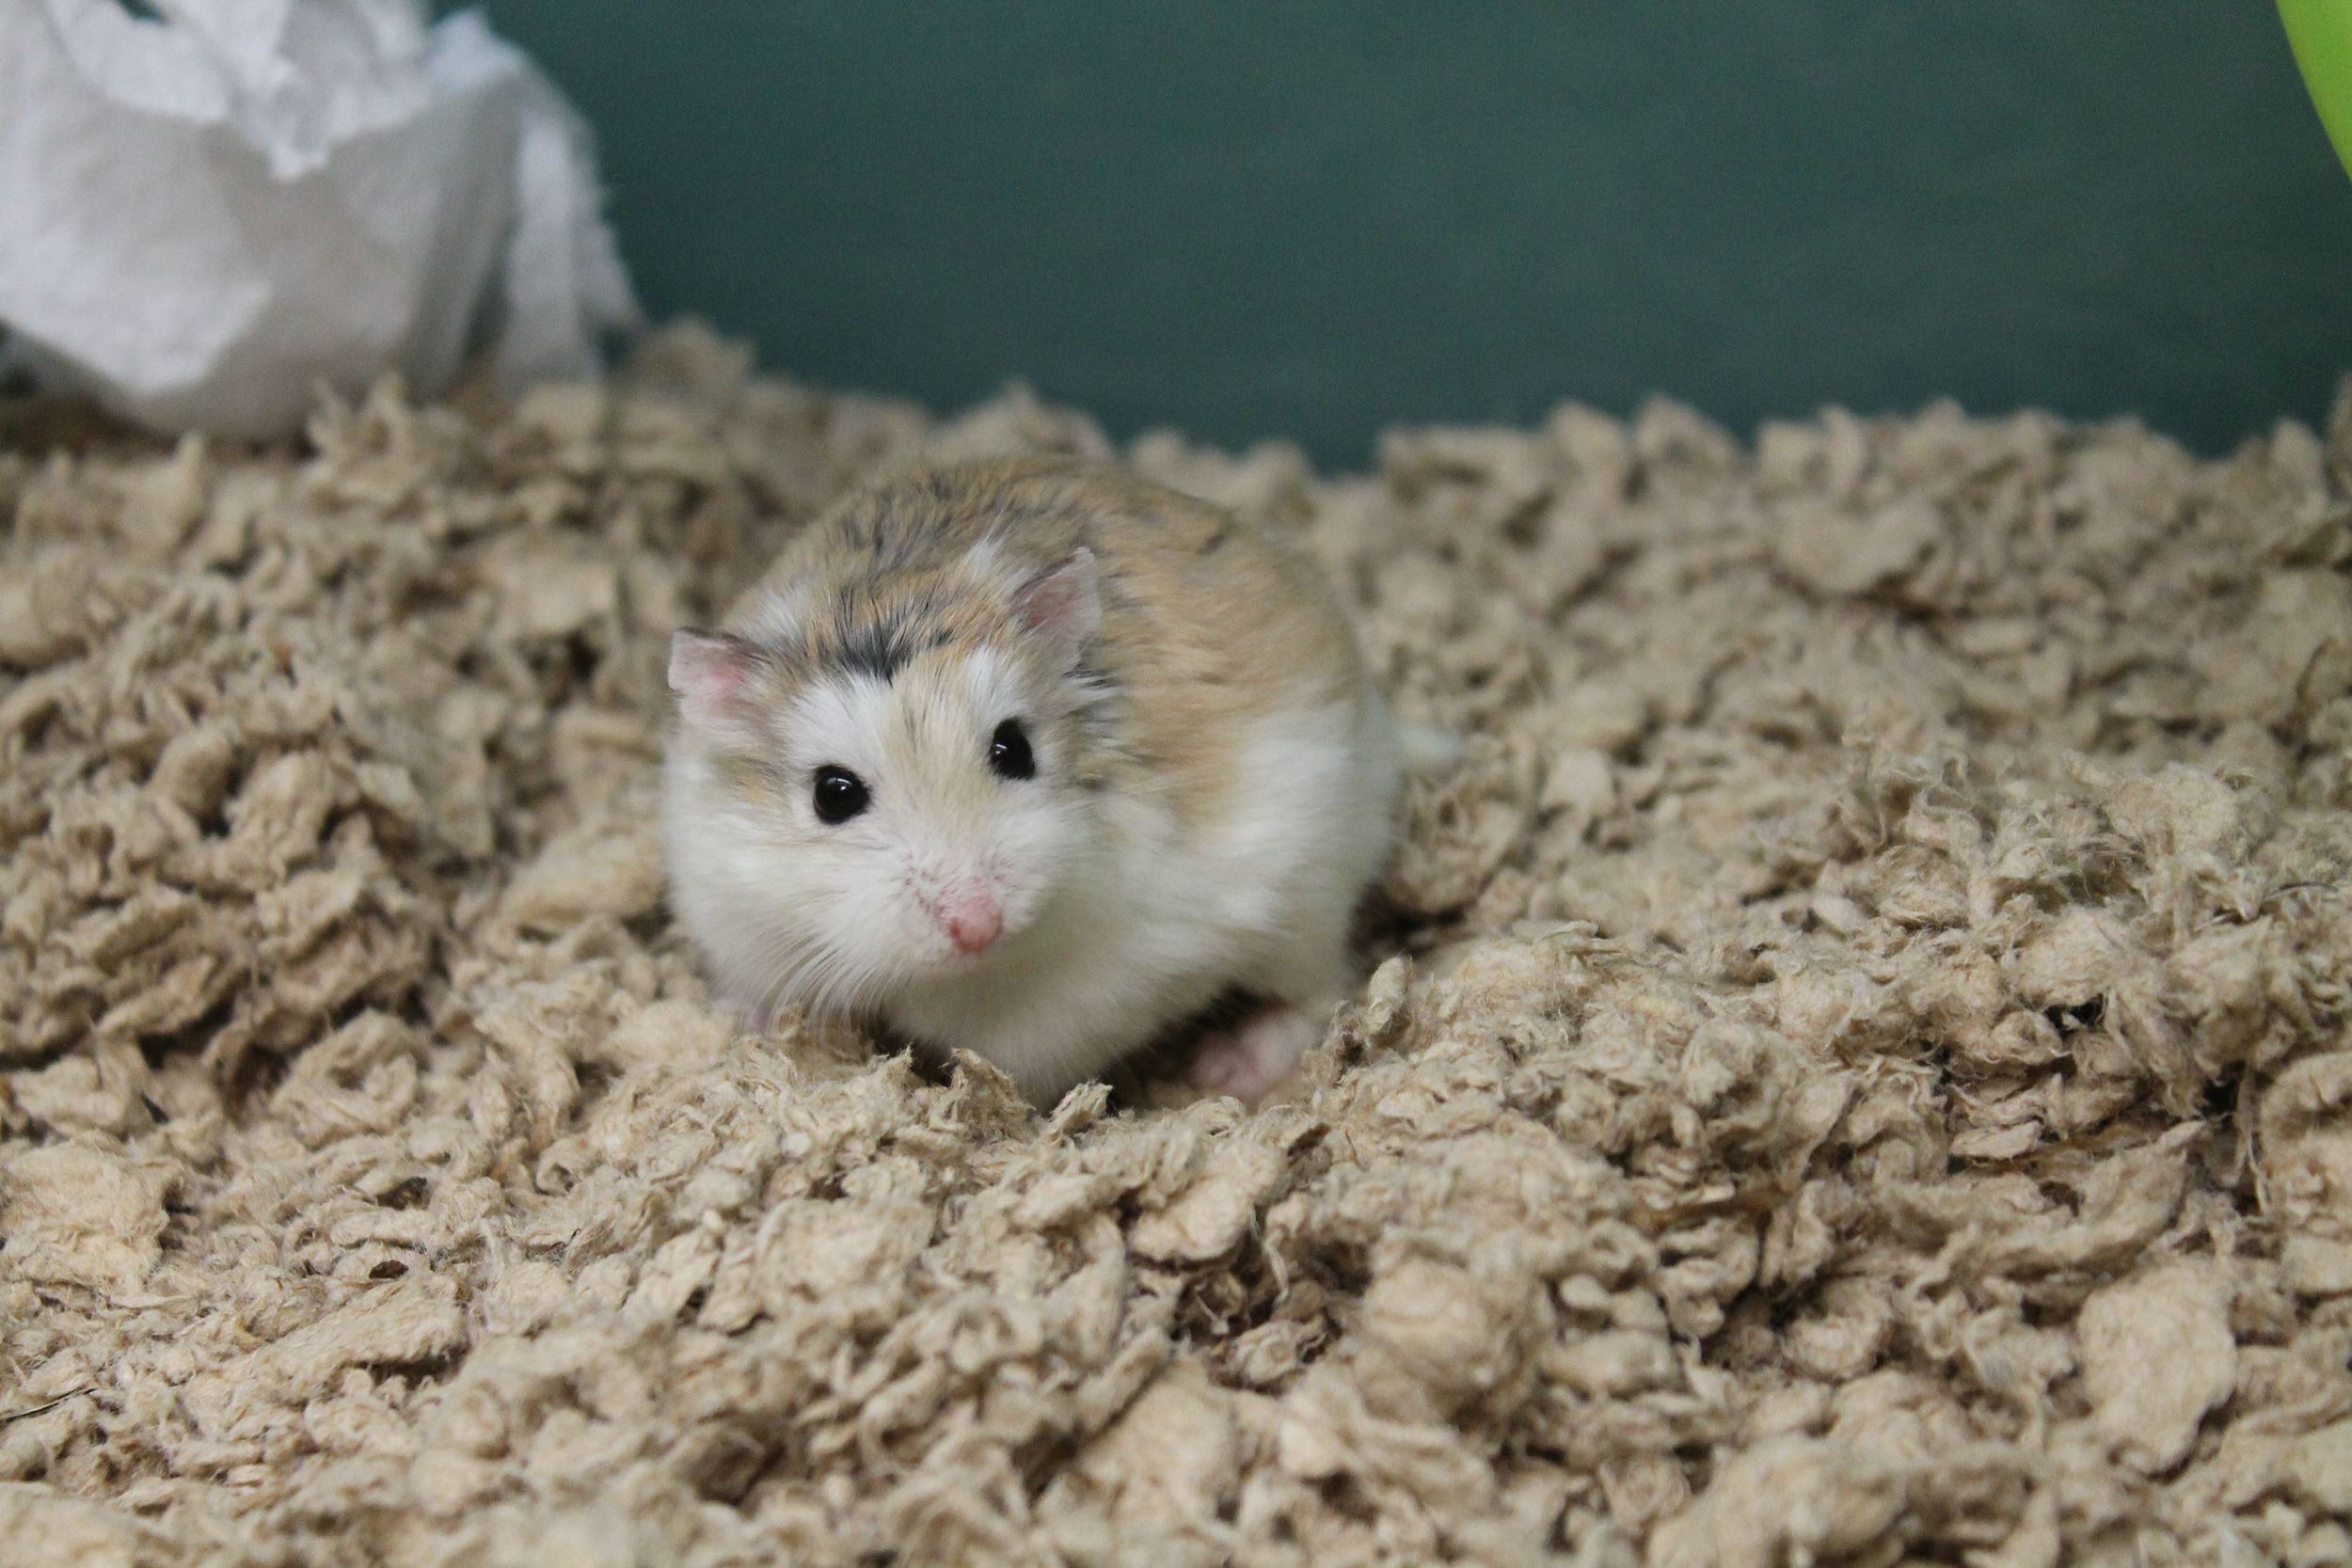 Bentley is a tiny little guy and full of speed--he is Roborovski Dwarf Hamster. He not easy to hold as he prefers to always be on the move rather than sit still. He would not do well with children. He is very cute and will be very entertaining as he scoots about his house and run in my wheel at high speeds!